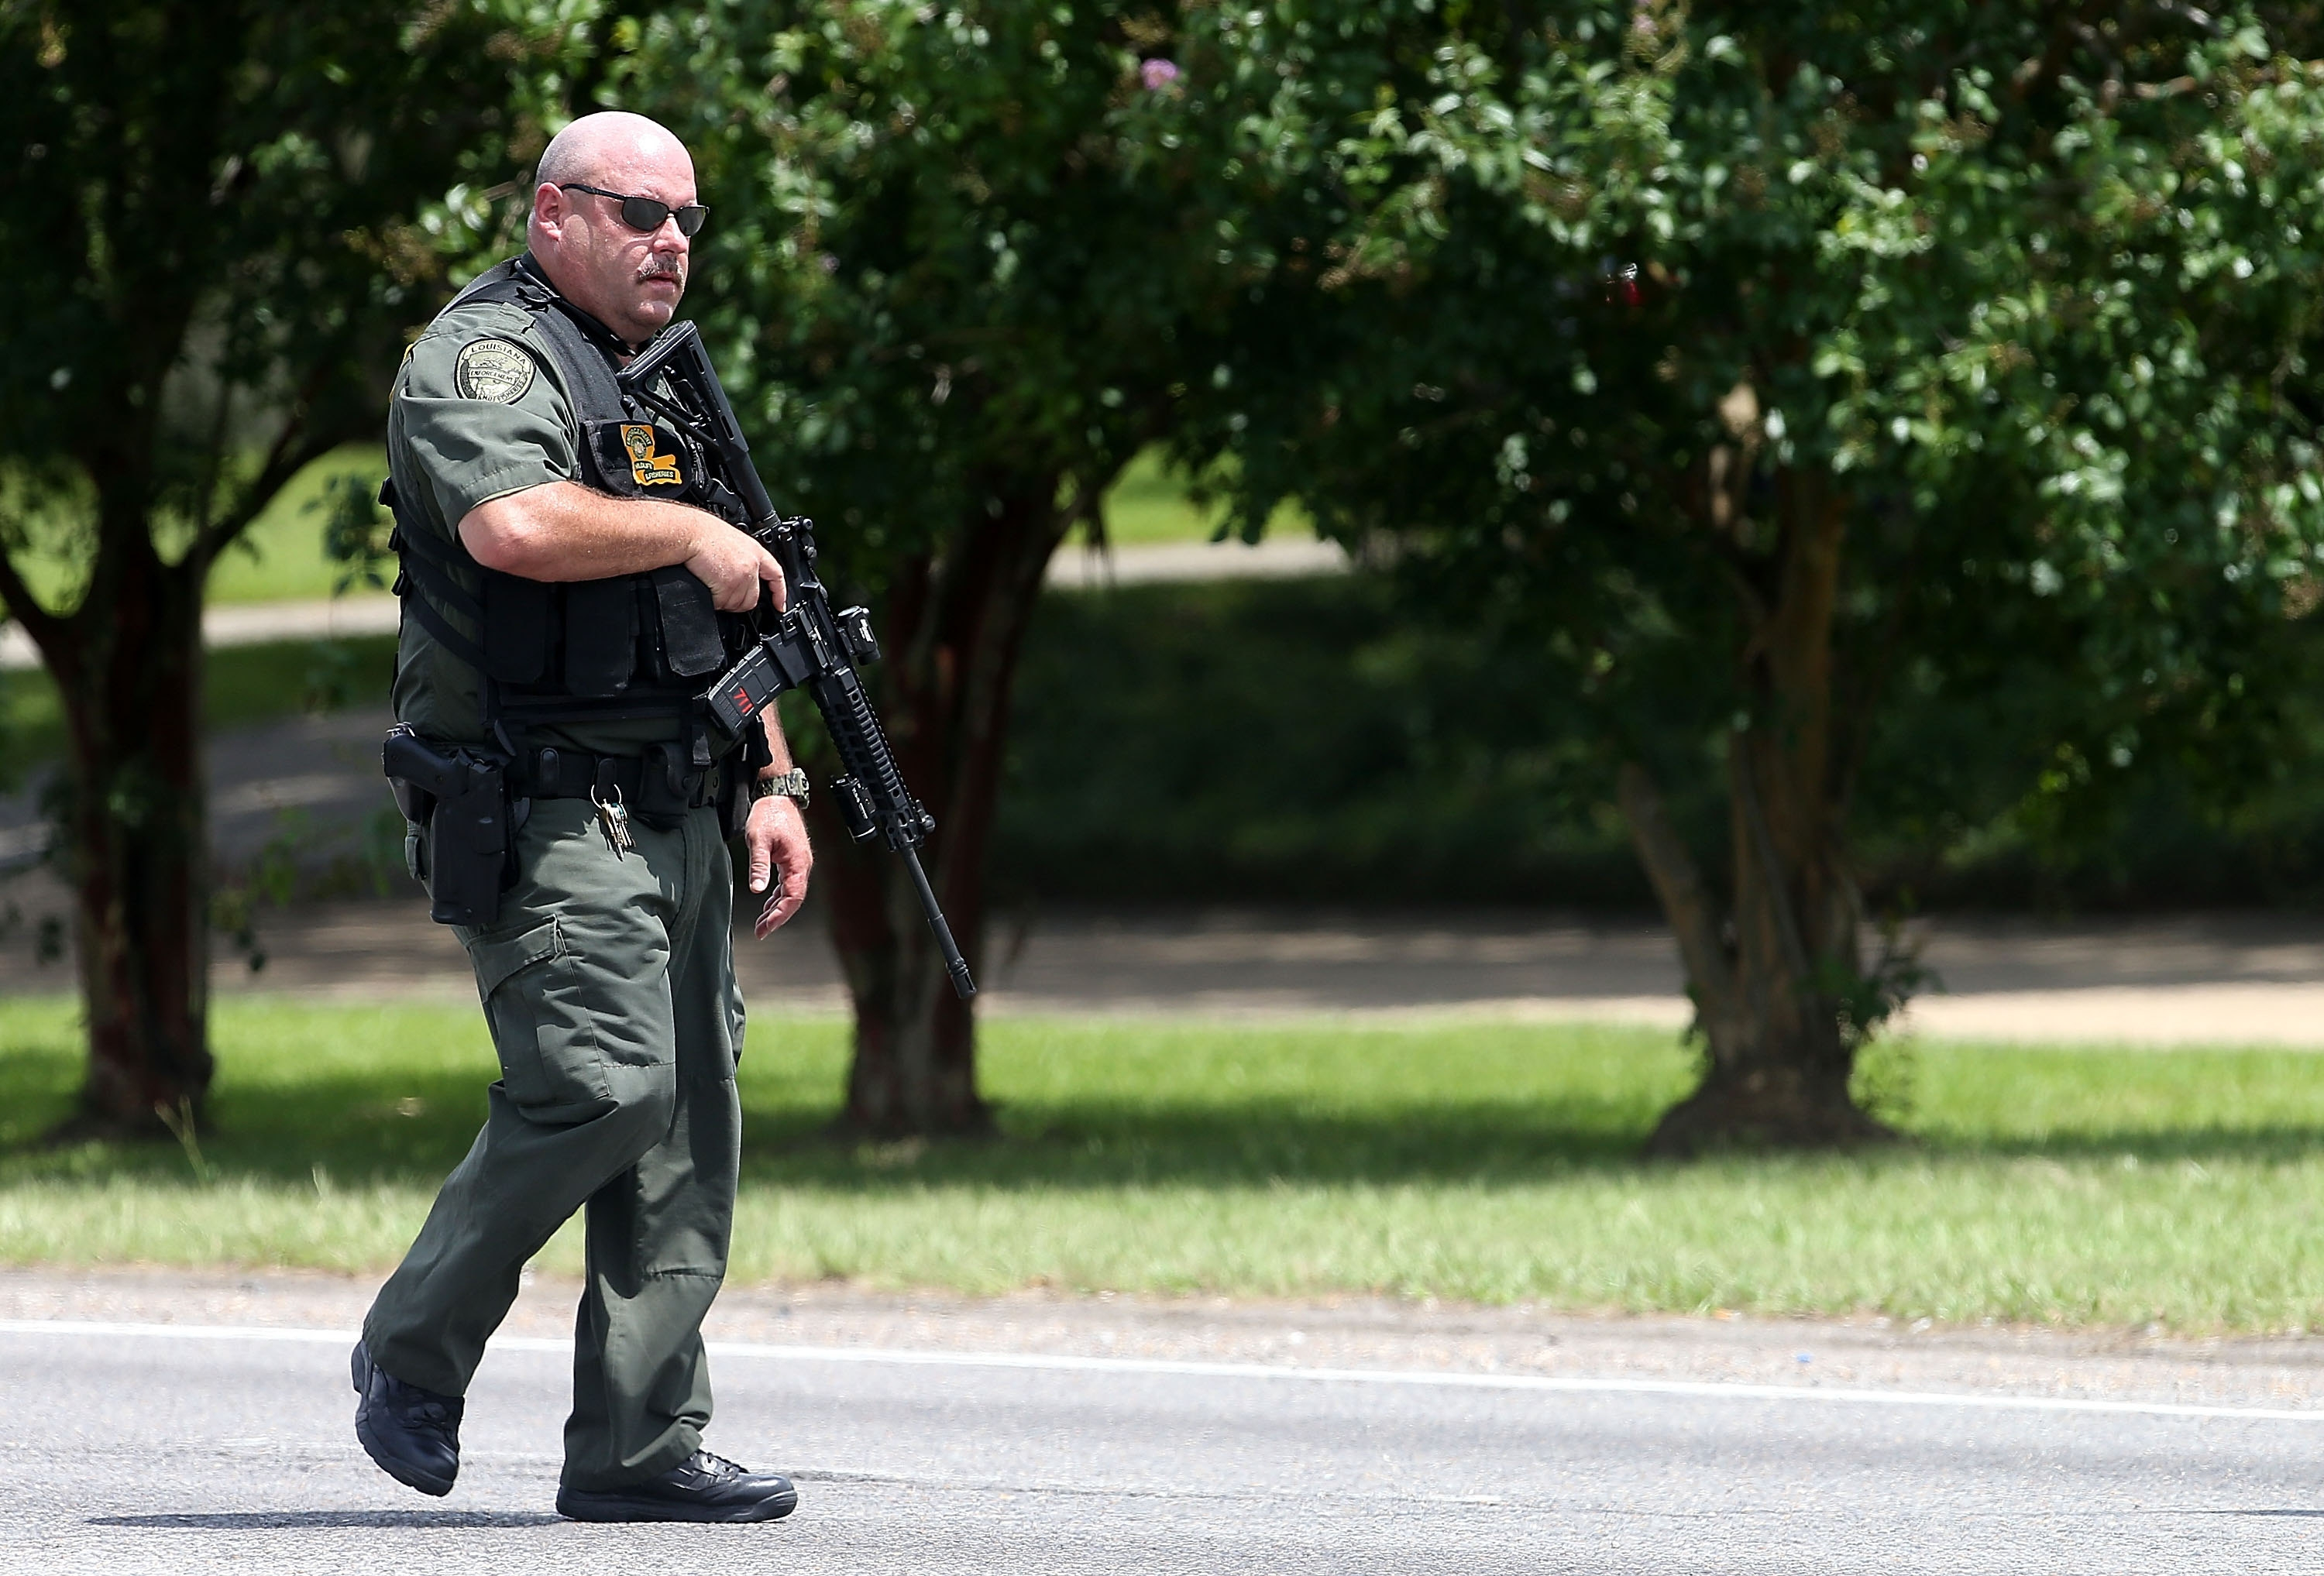 Baton Rouge Police officers patrol Airline Highway after three police officers were killed early the morning of July 17 in Baton Rouge, La. (Sean Gardner/Getty Images)